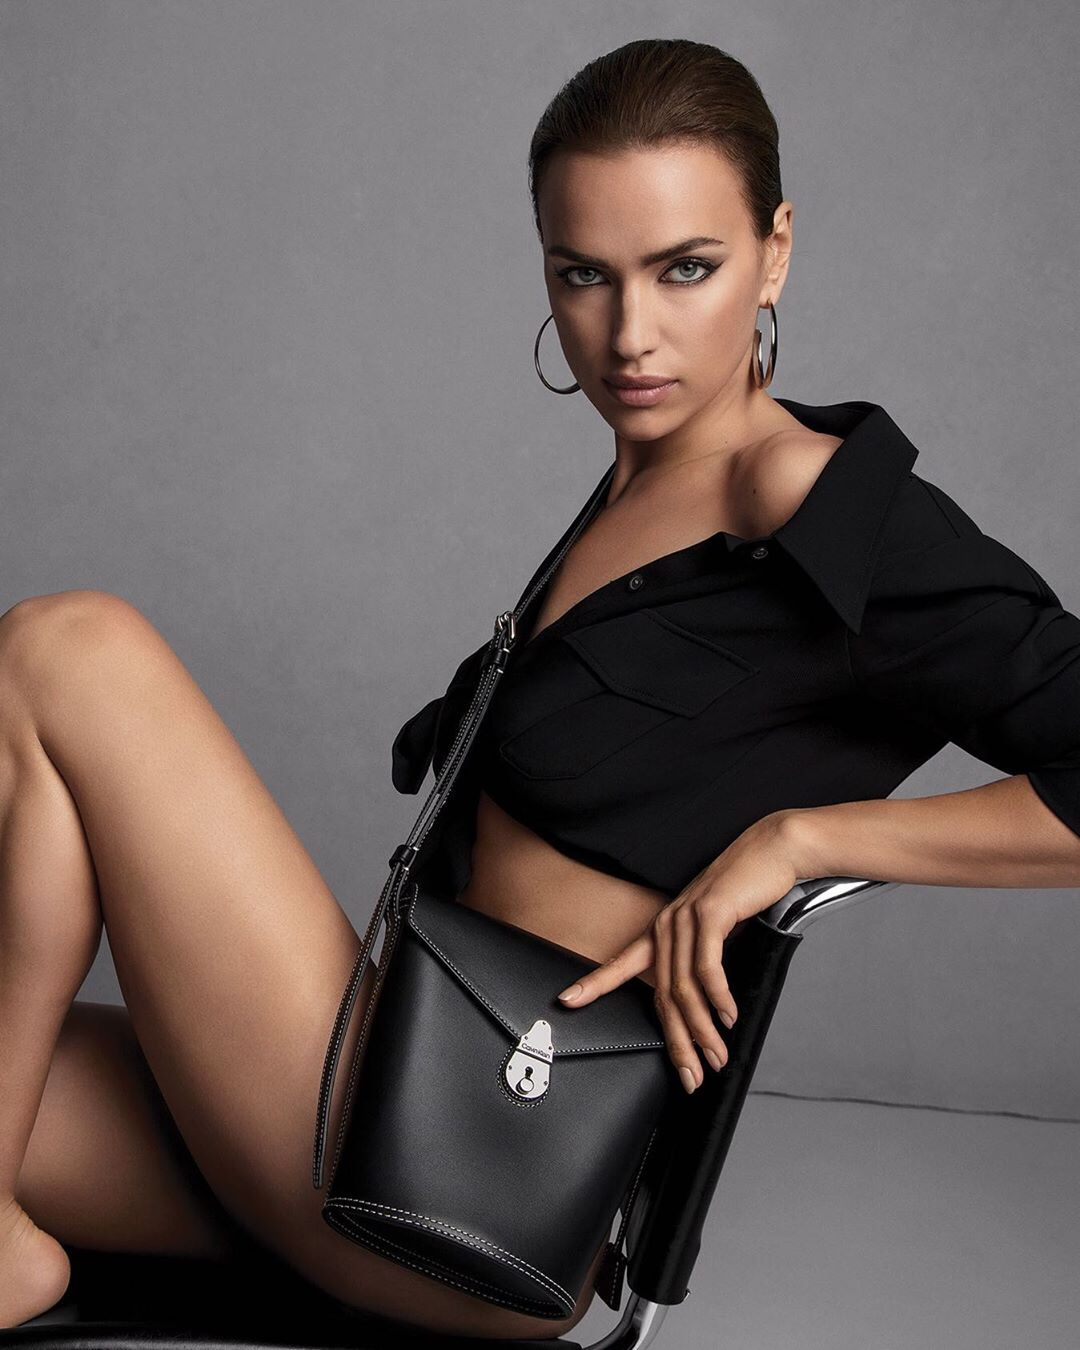 Calvin Klein's Fall Winter 2019.20 Handbags campaign starring supermodel Irina Shayk